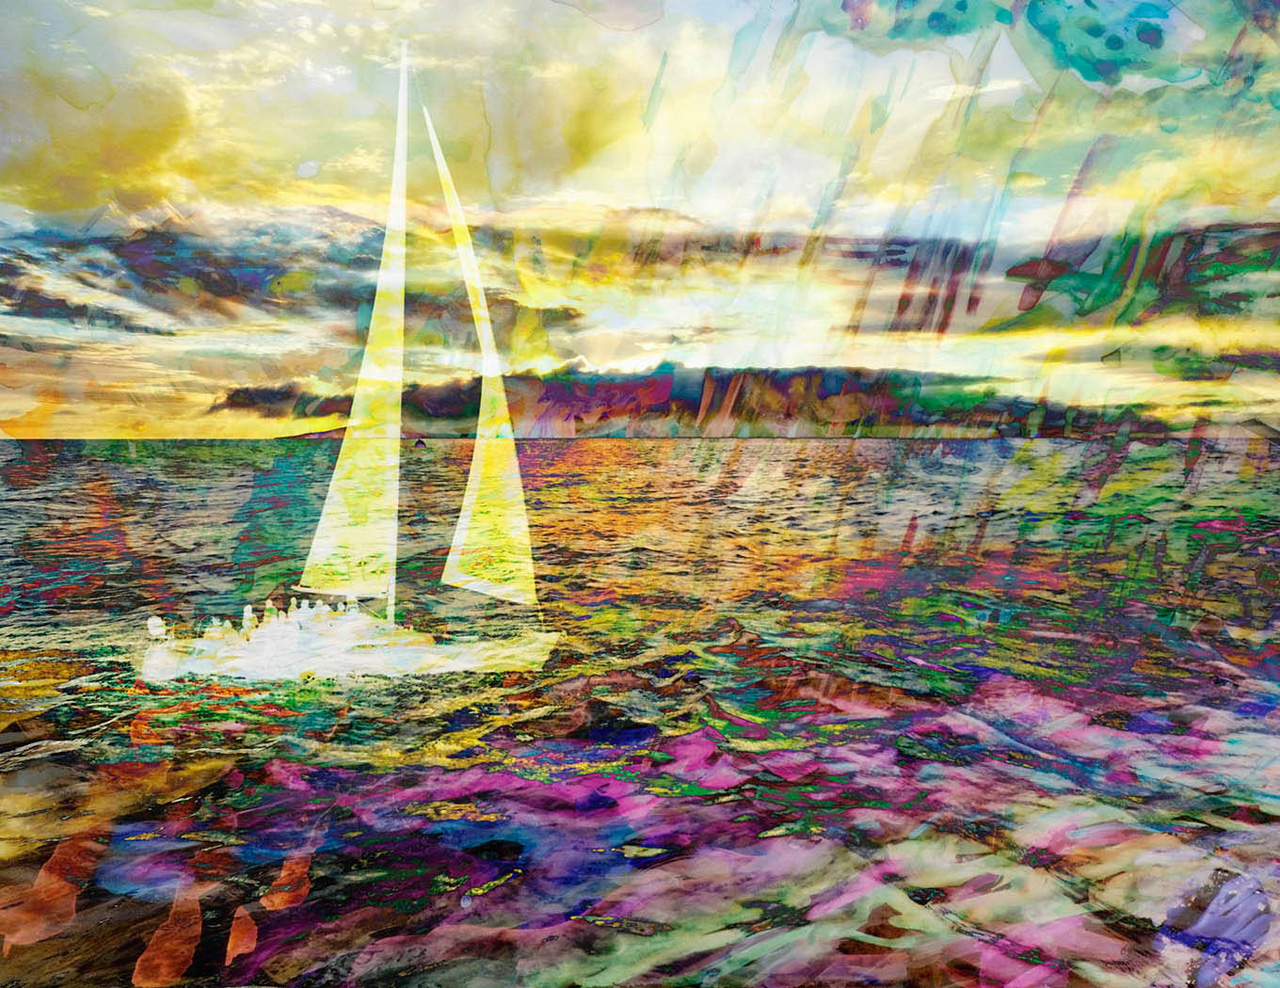 Difting in a Sea of Dreams by Marisela Bracho depicting a sailboat on water